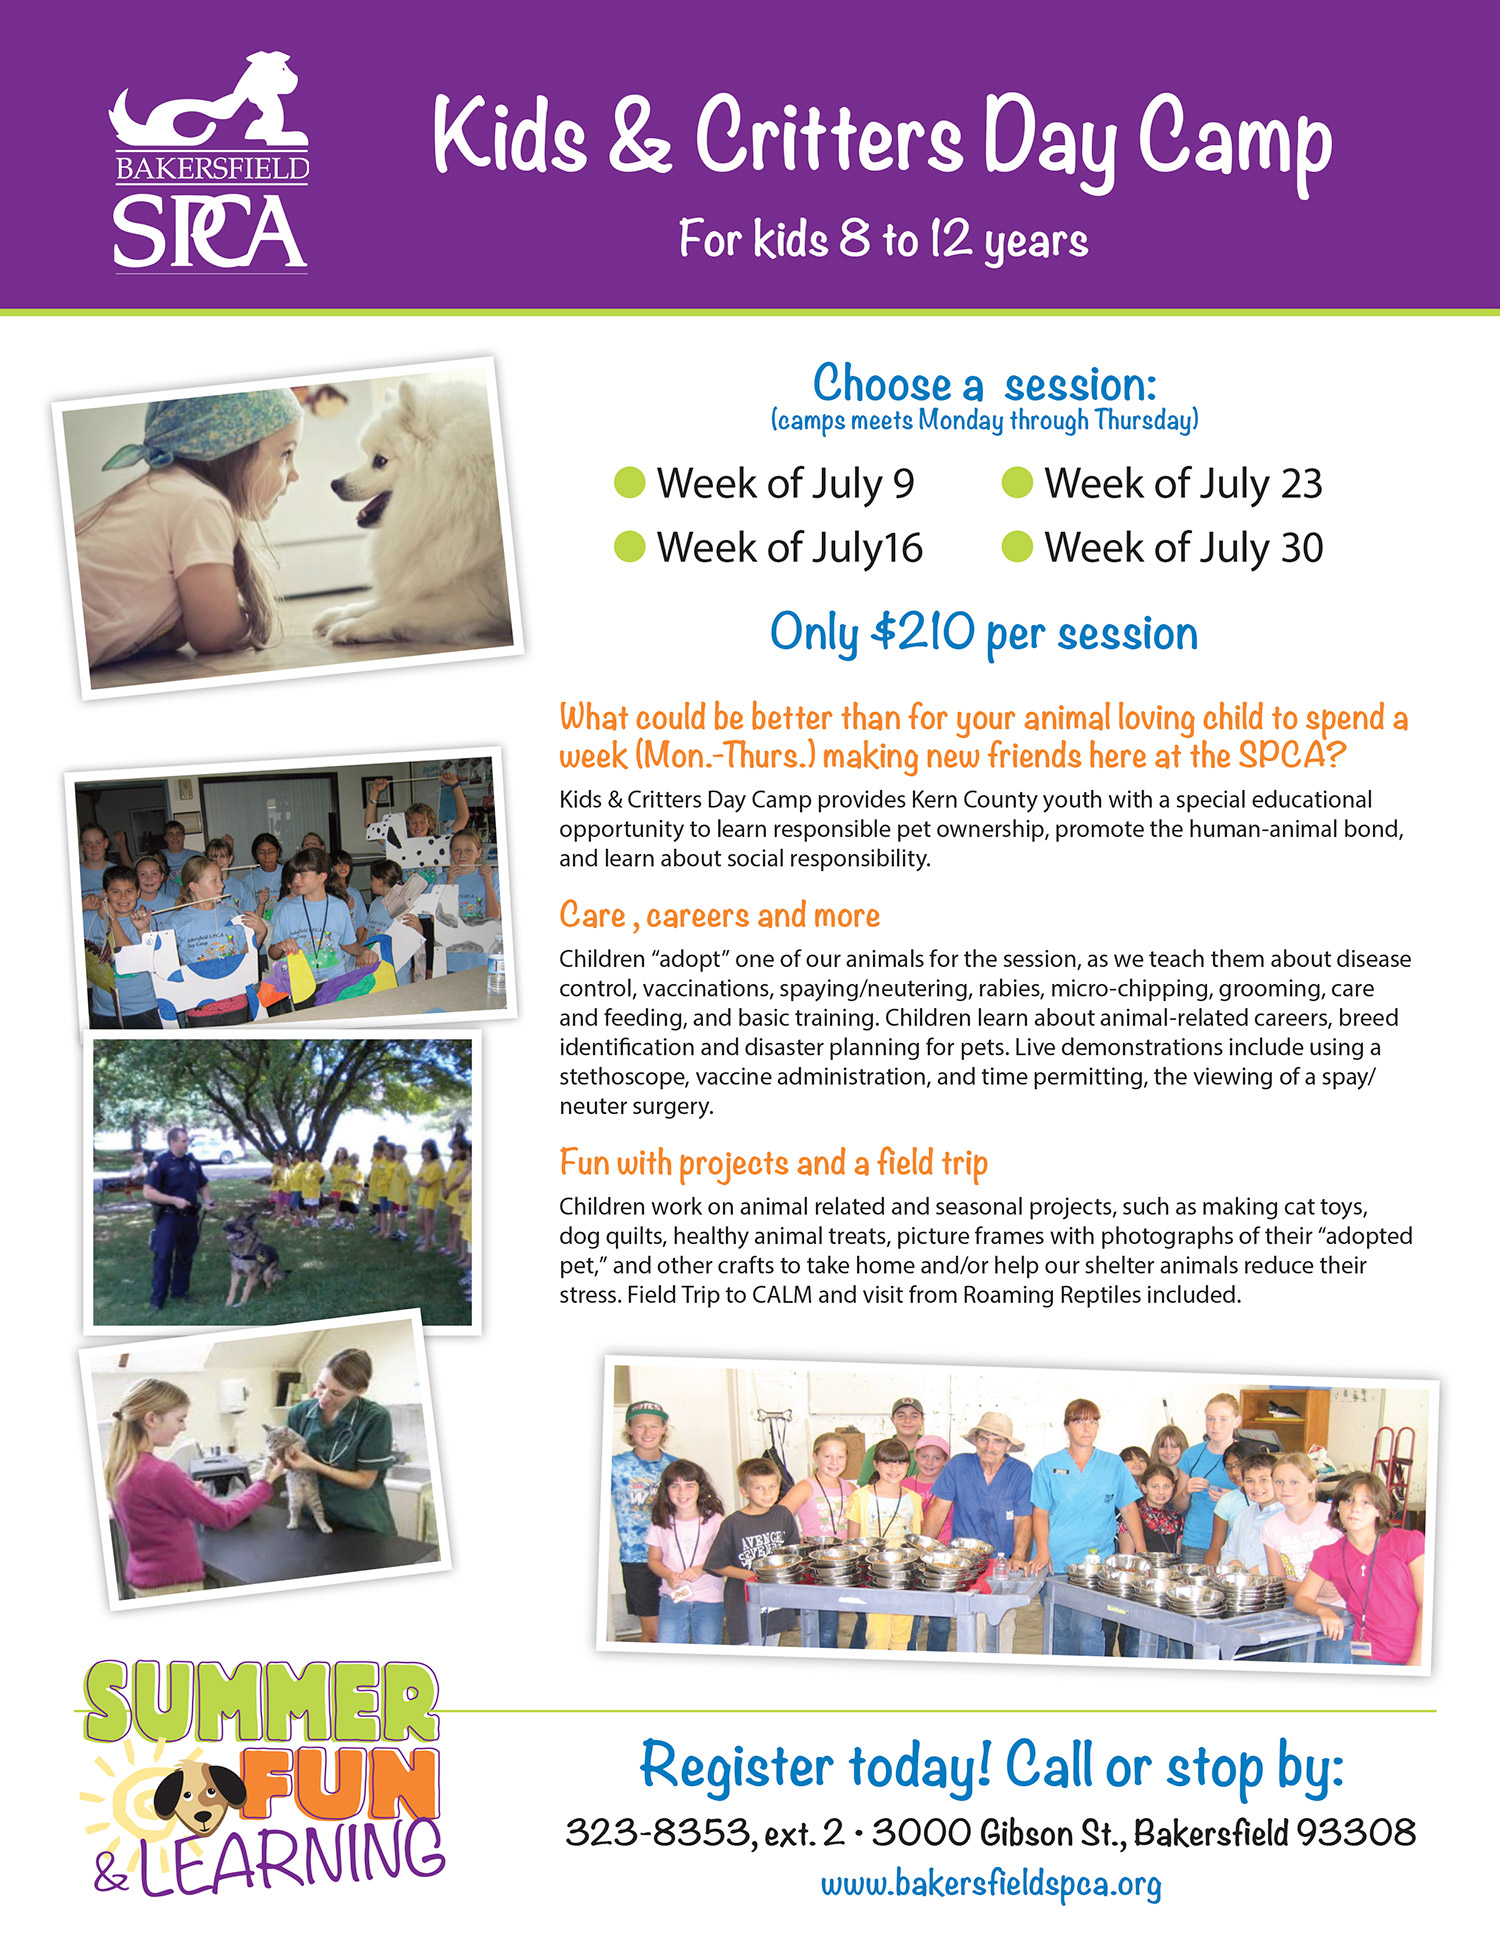 SPCA Bakersfield Summer Camp